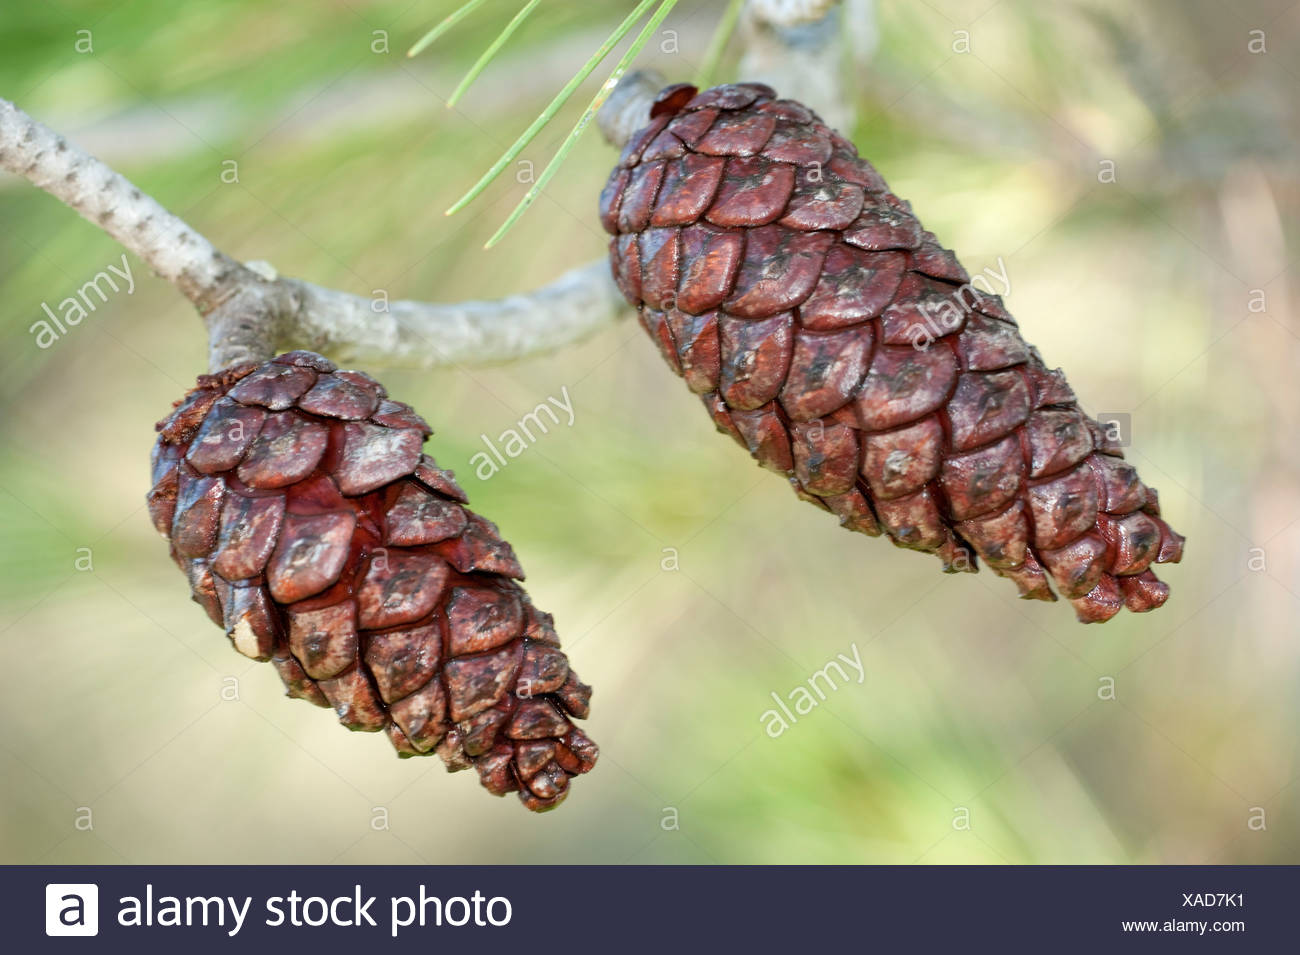 Pair of Pine Cones on tree Andalucia Spain - Stock Image